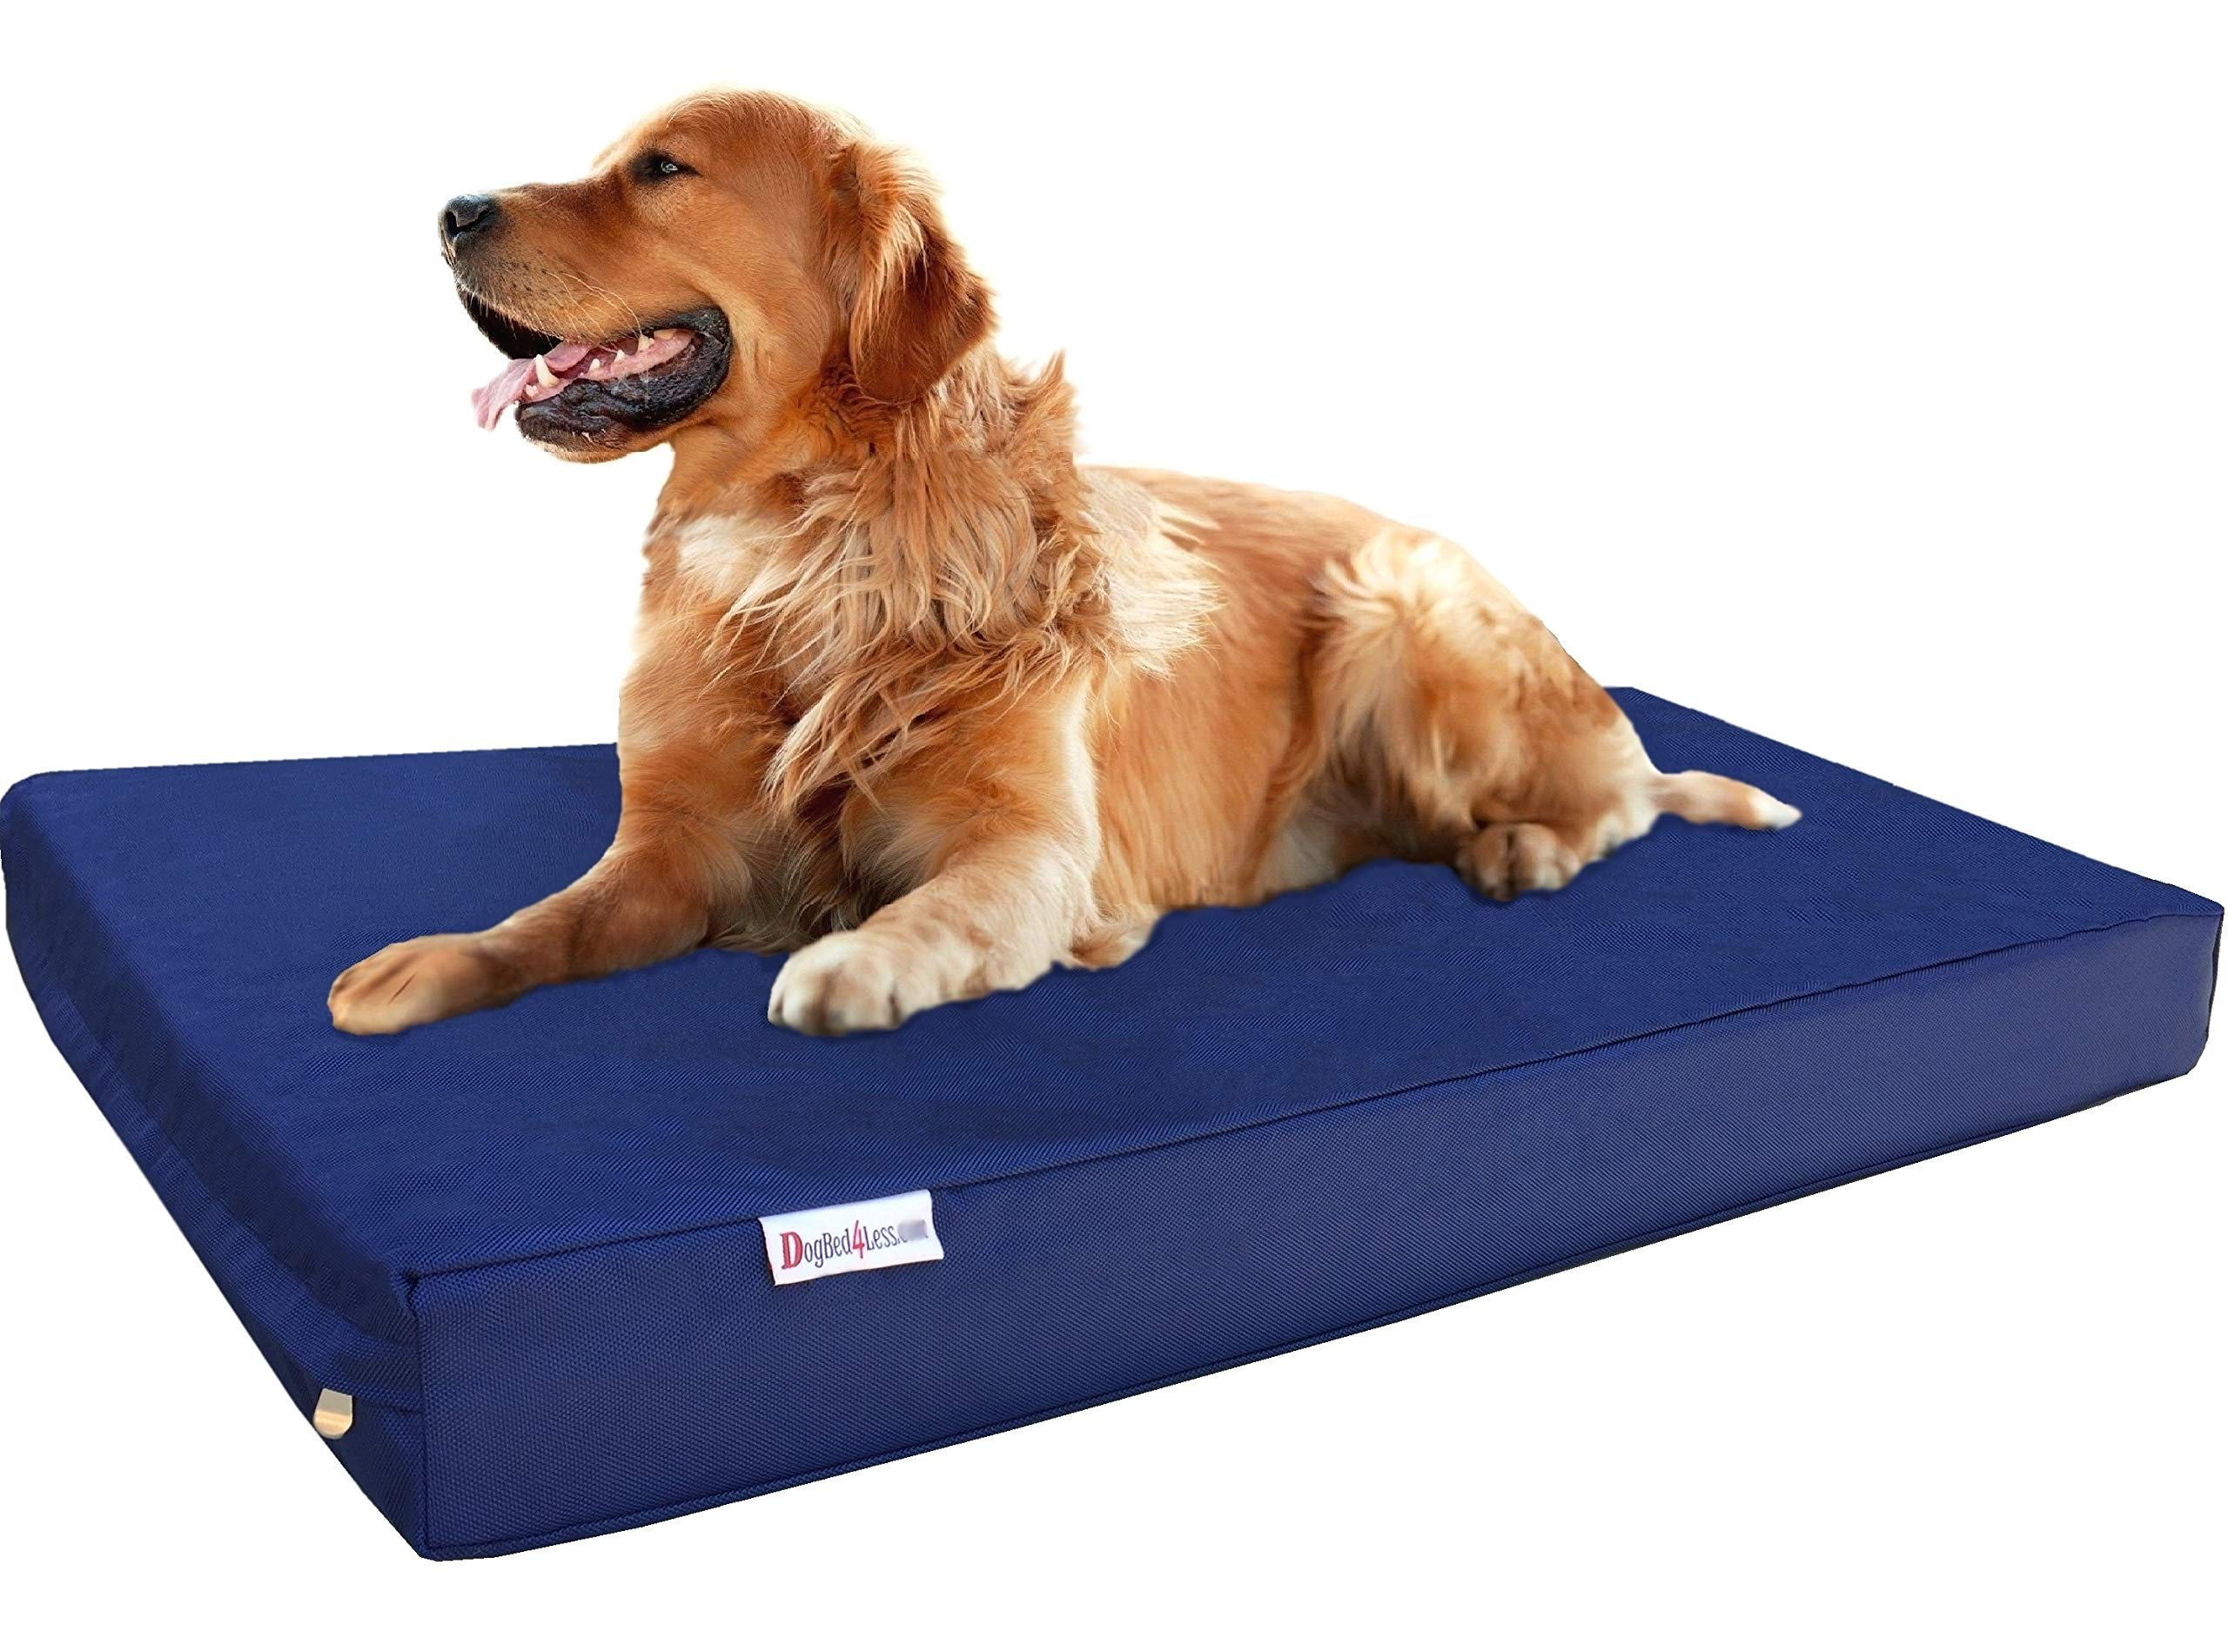 Dogbed4less Durable Extra Large Gel Memory Foam Dog Bed with 1680d Nylon Blue Cover and Waterproof Liner with Bonus Cover, 47X29X4 Inch (Fit 48X30 Crate)